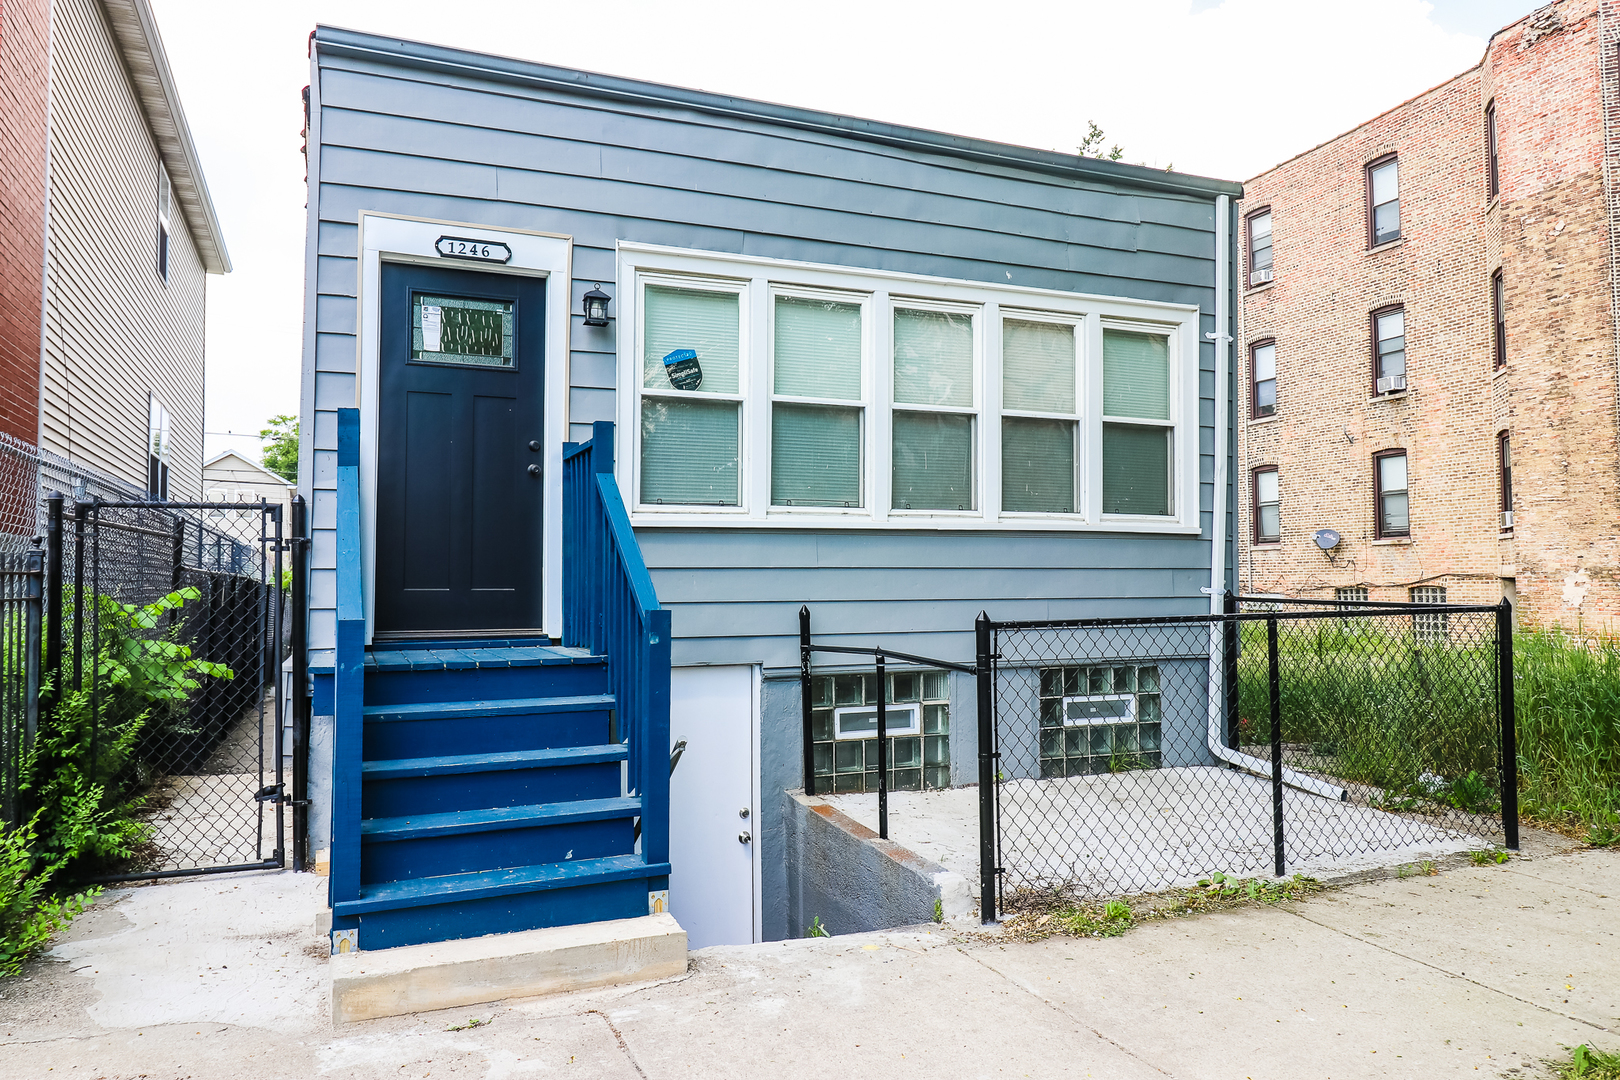 Photo of 1246 S Spaulding Avenue, Chicago, IL 60623